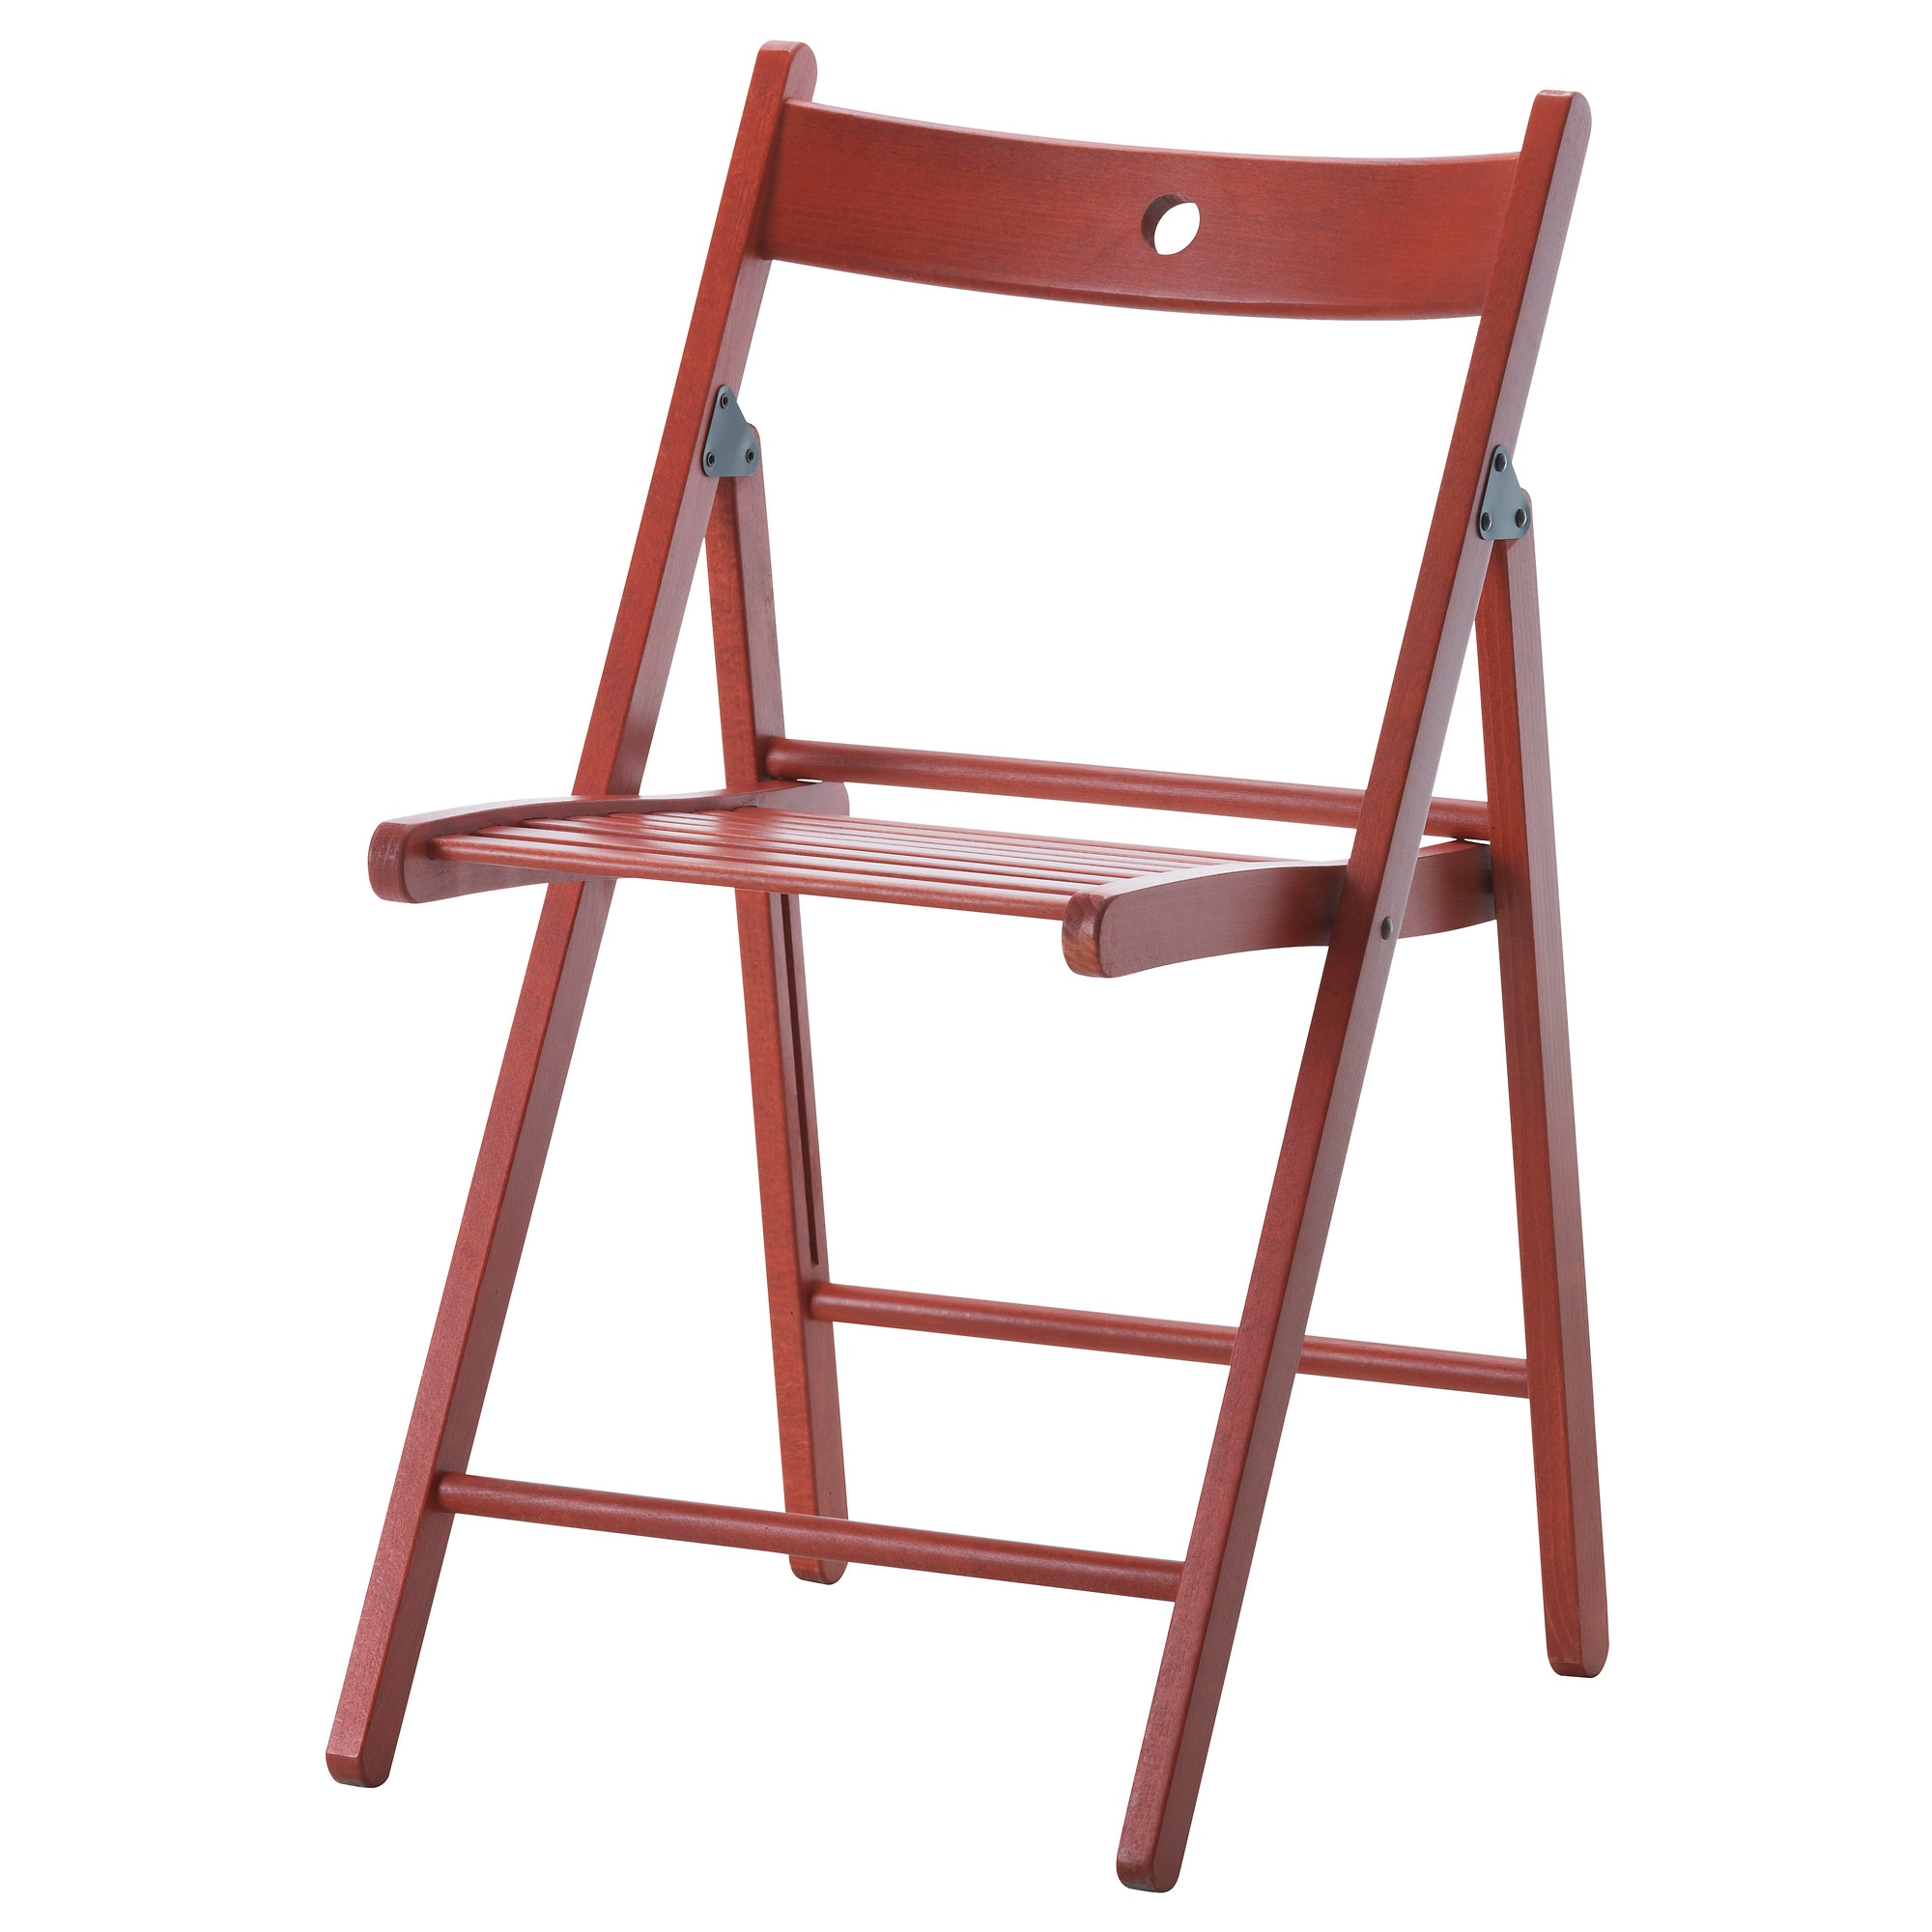 terje folding chair red tested for 220 lb width 17 38